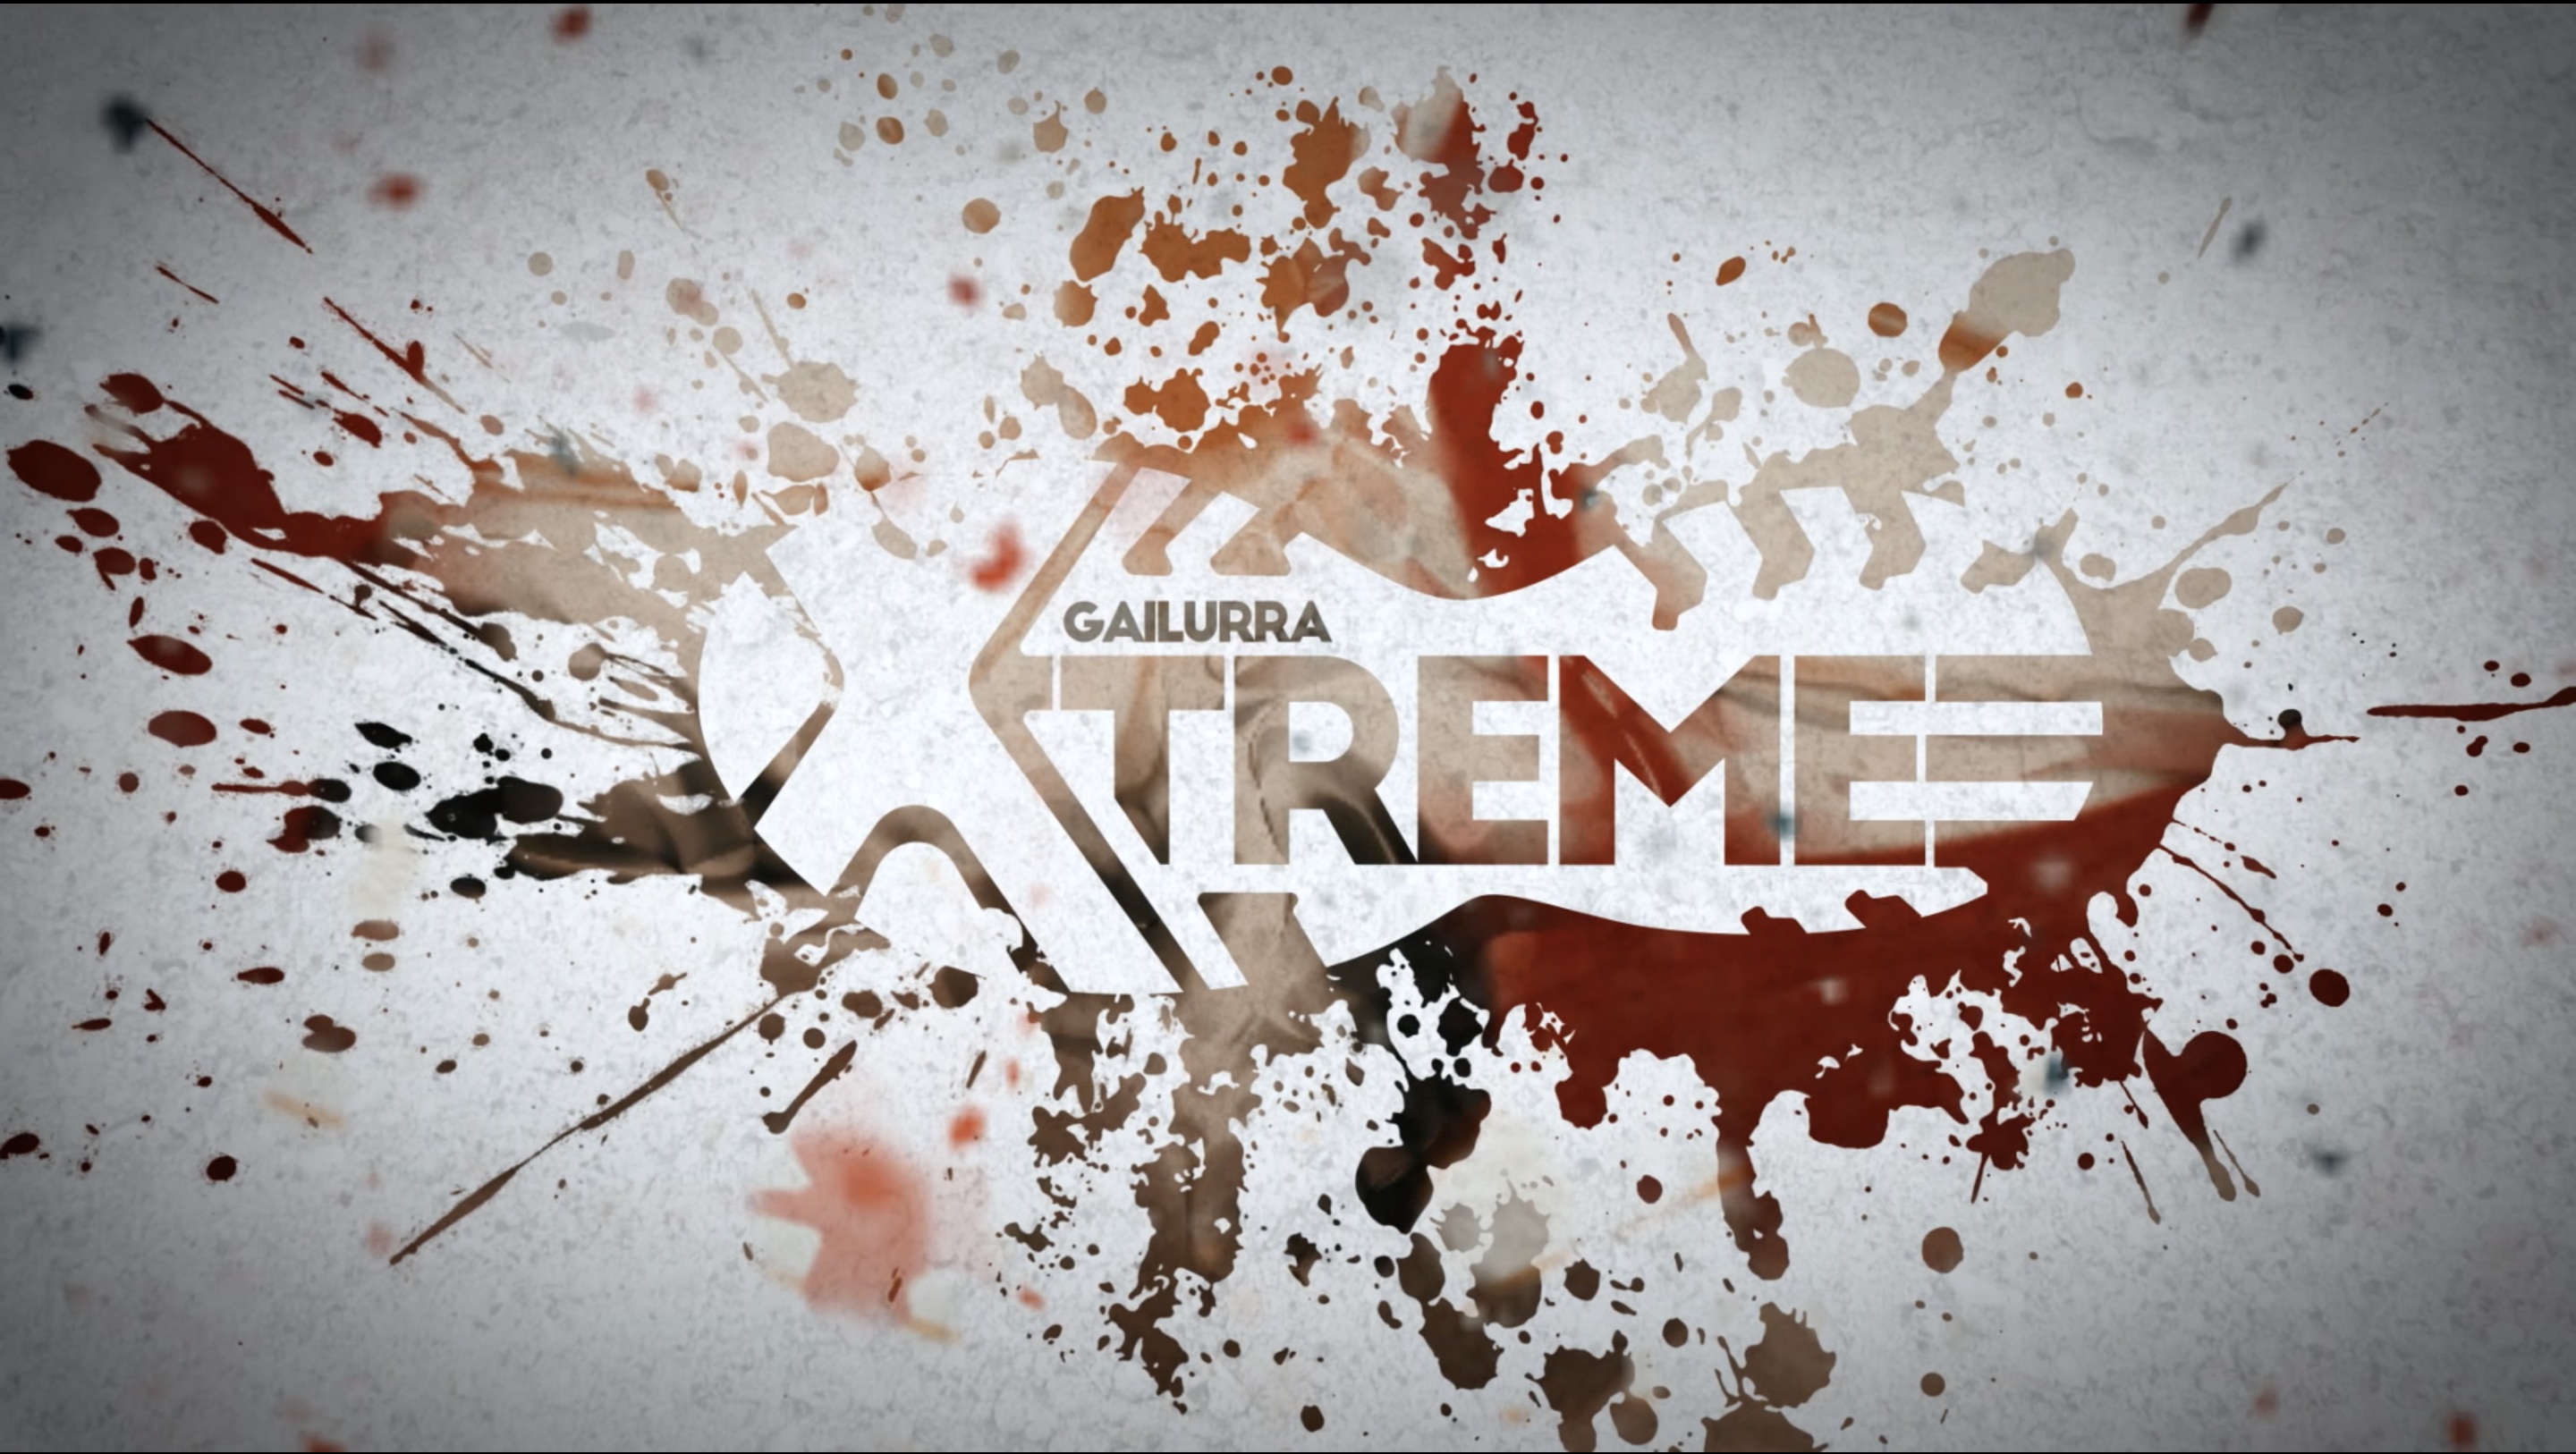 Gailurra Xtreme portada video